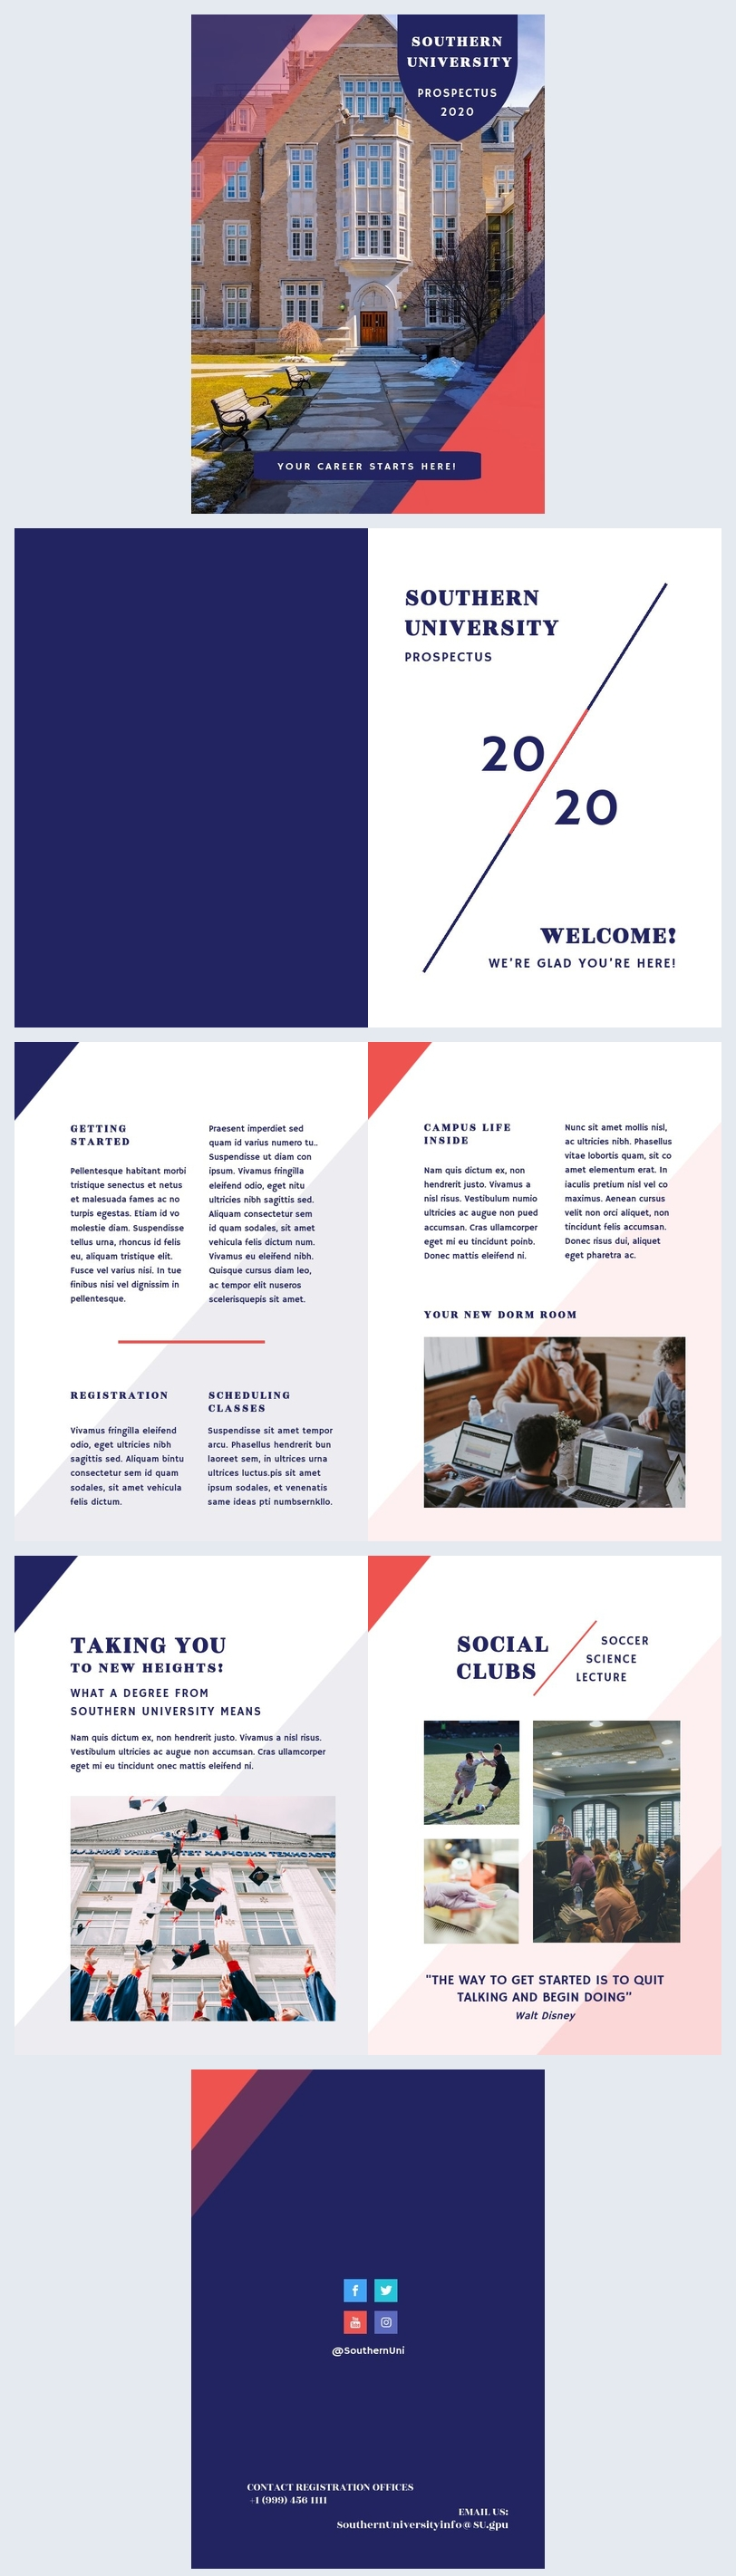 Prospectus Design Template